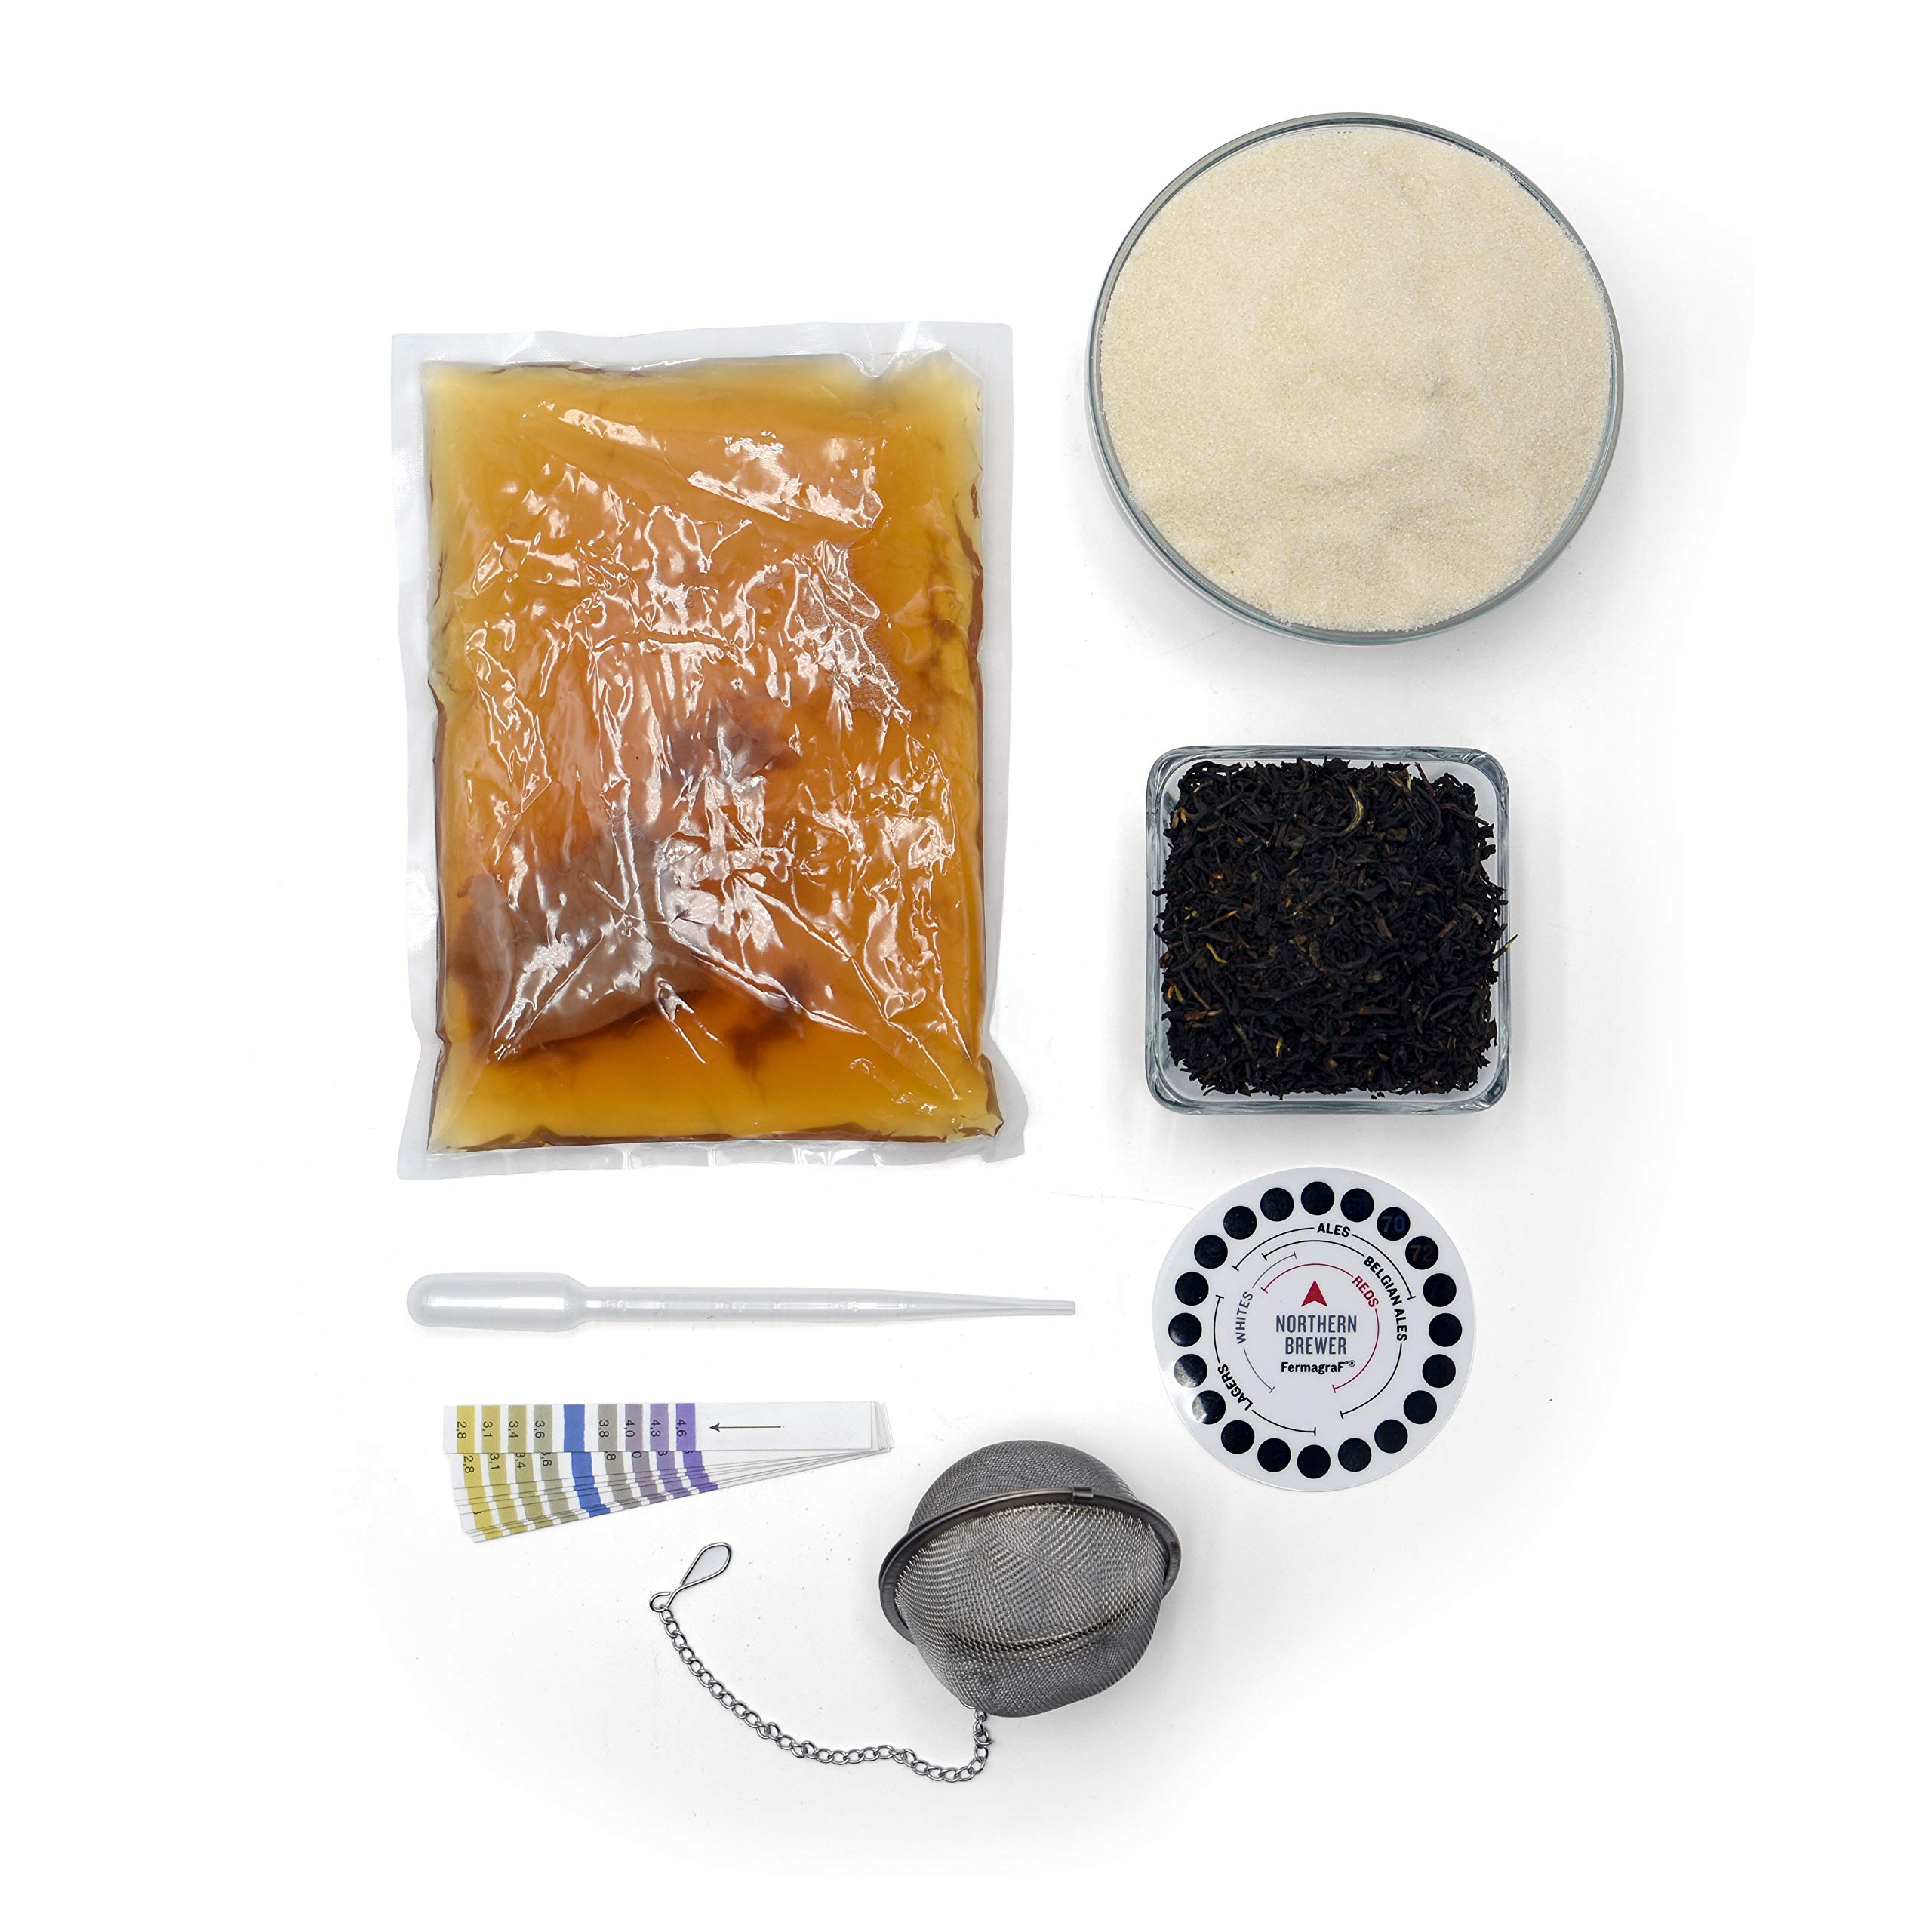 Northern Brewer - Kombucha Brewing Starter Kit With Scoby Included (3 Gallon Glass with Stainless Spigot) by Northern Brewer (Image #7)